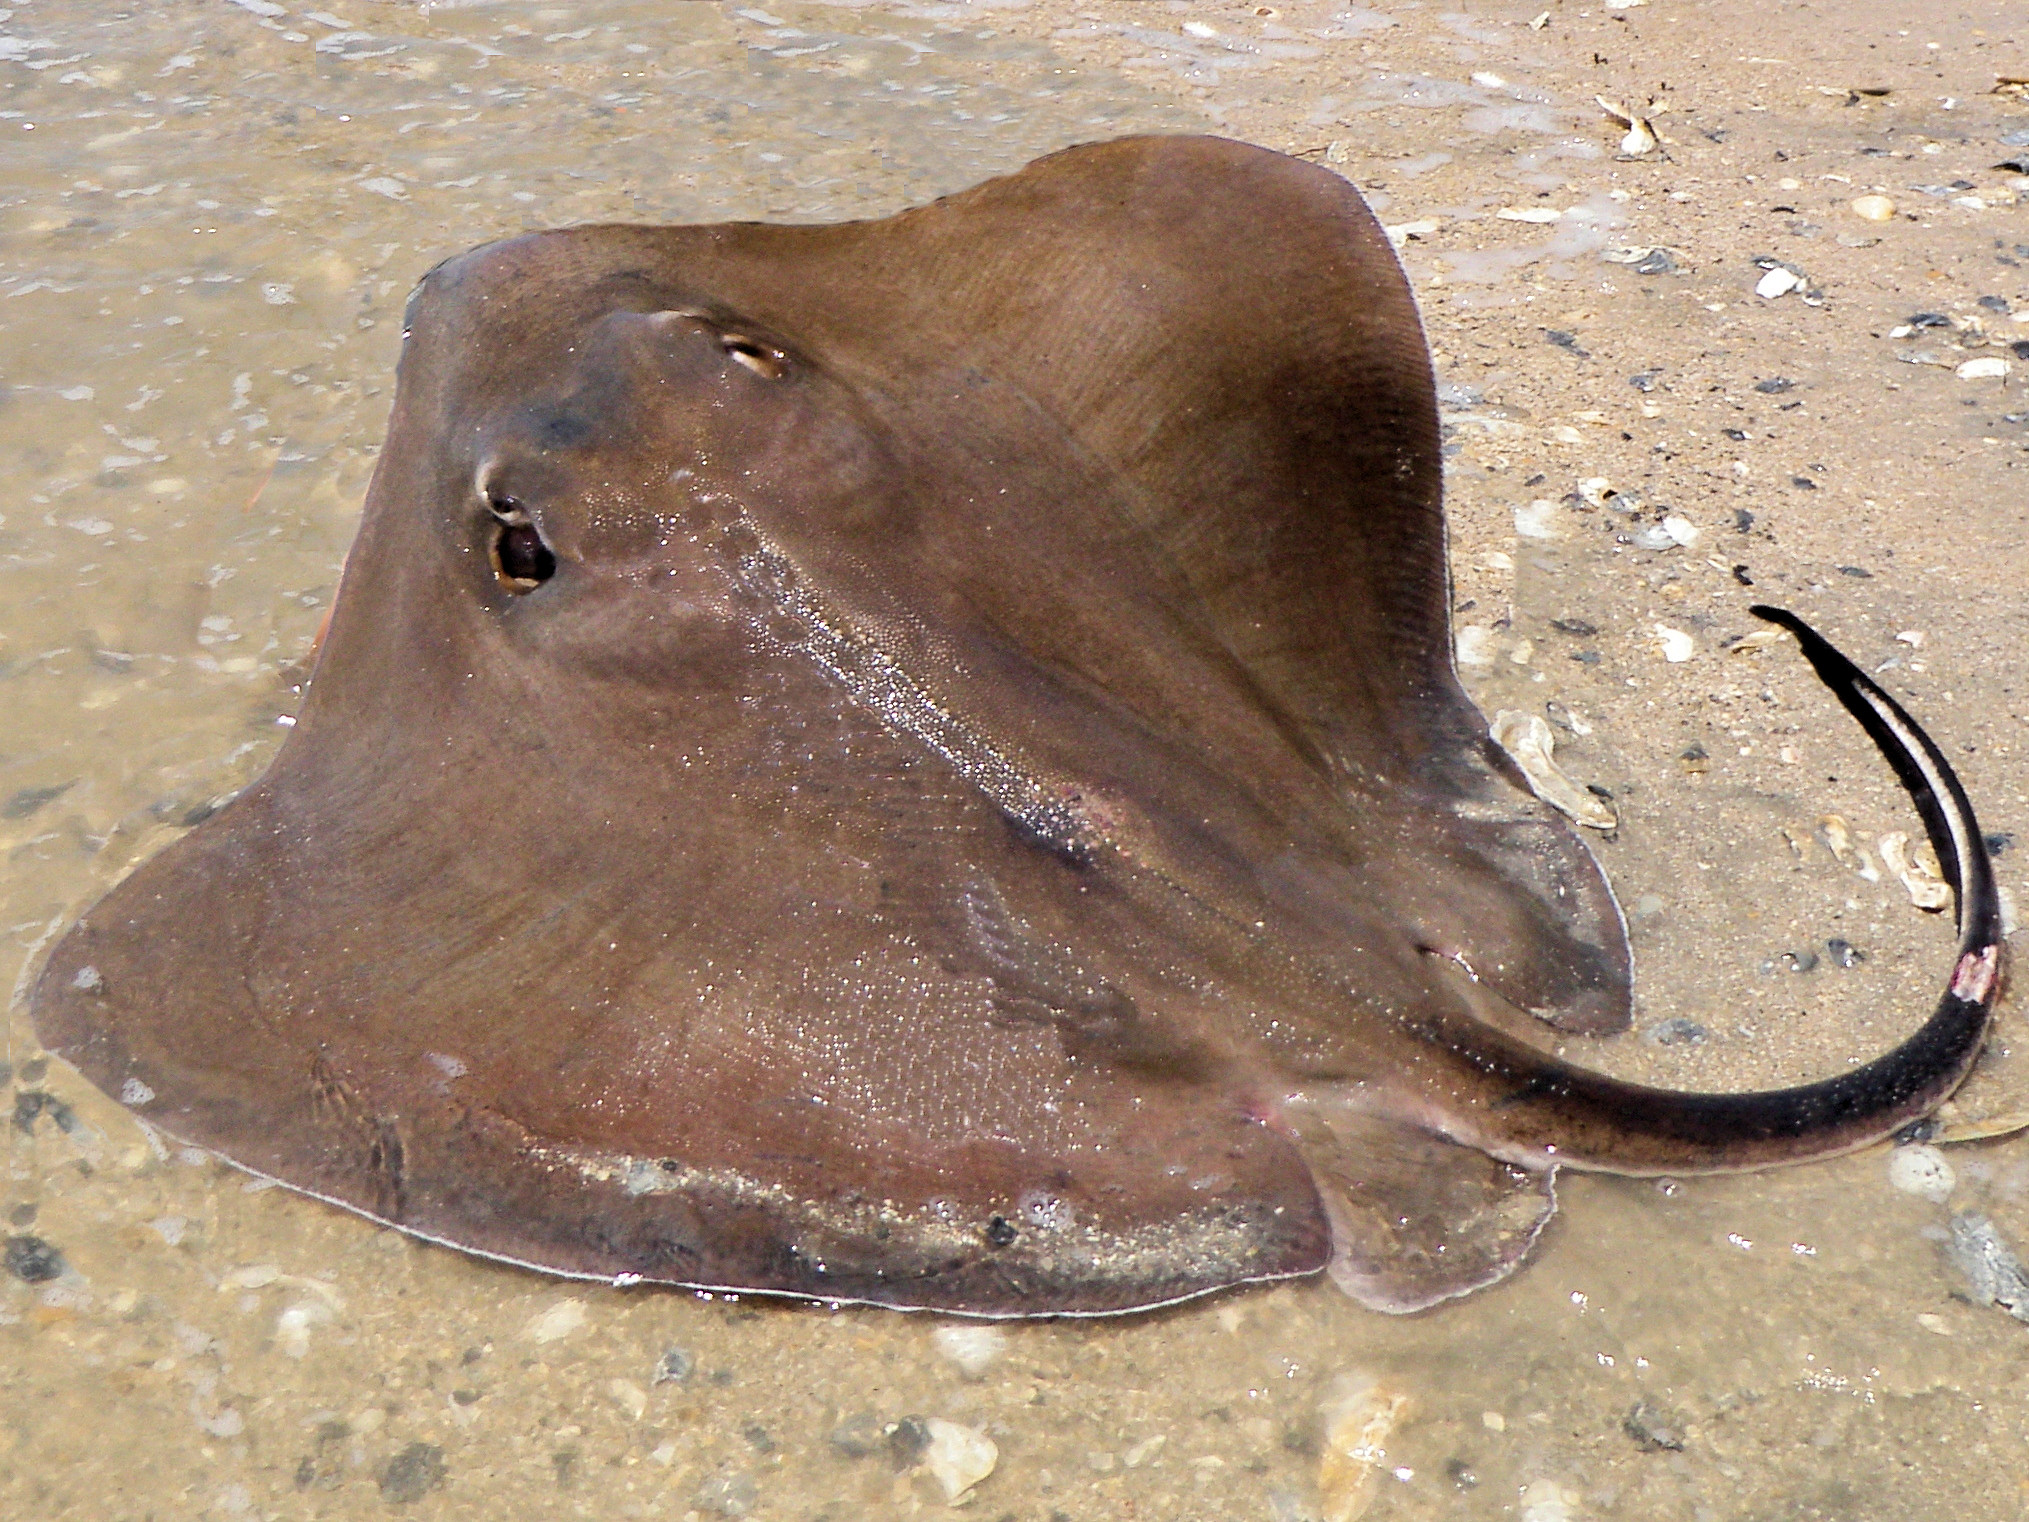 Southern stingray mexico fish marine life birds and for Is a stingray a fish